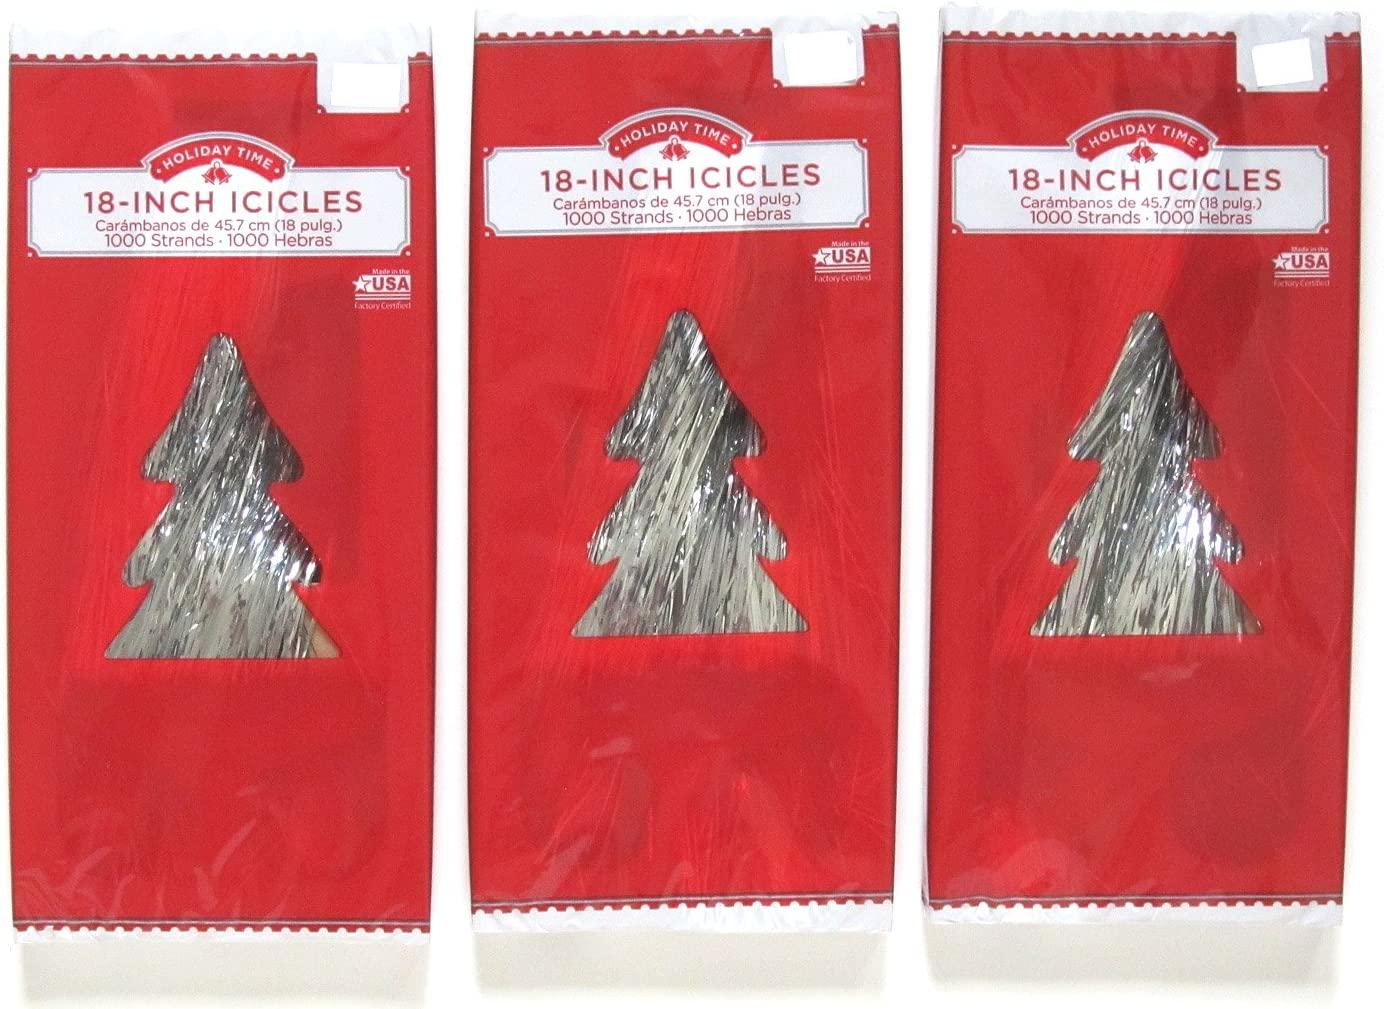 SILVER ICICLES Bombing free shipping 2000CT Trust